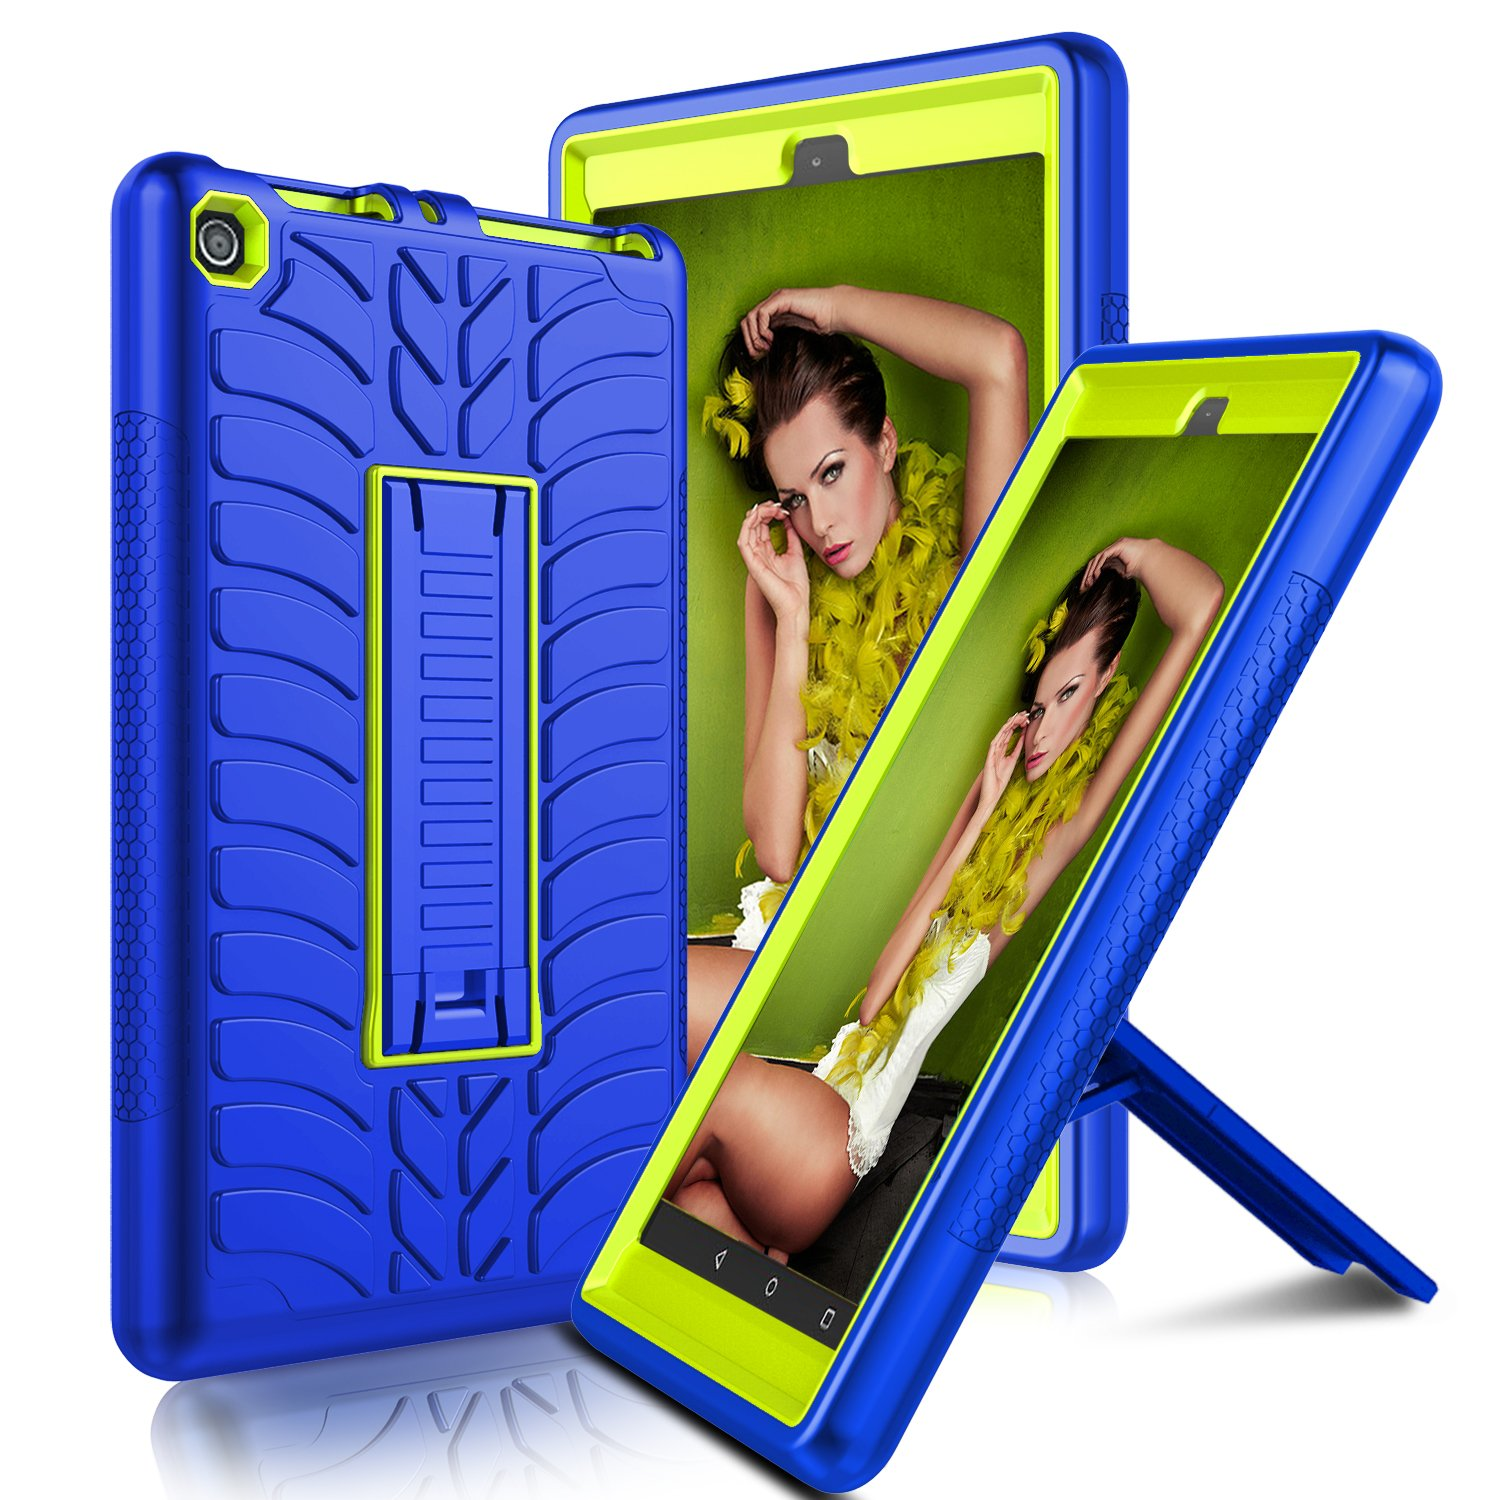 Elegant Choise All-New Amazon Fire 8 2017 Case with Kickstand Heavy Duty Shockproof Full Body Defender Armor Rugged Protective Cover Case for Amazon Kindle Fire 8 2017 Release (Yellow/Blue)